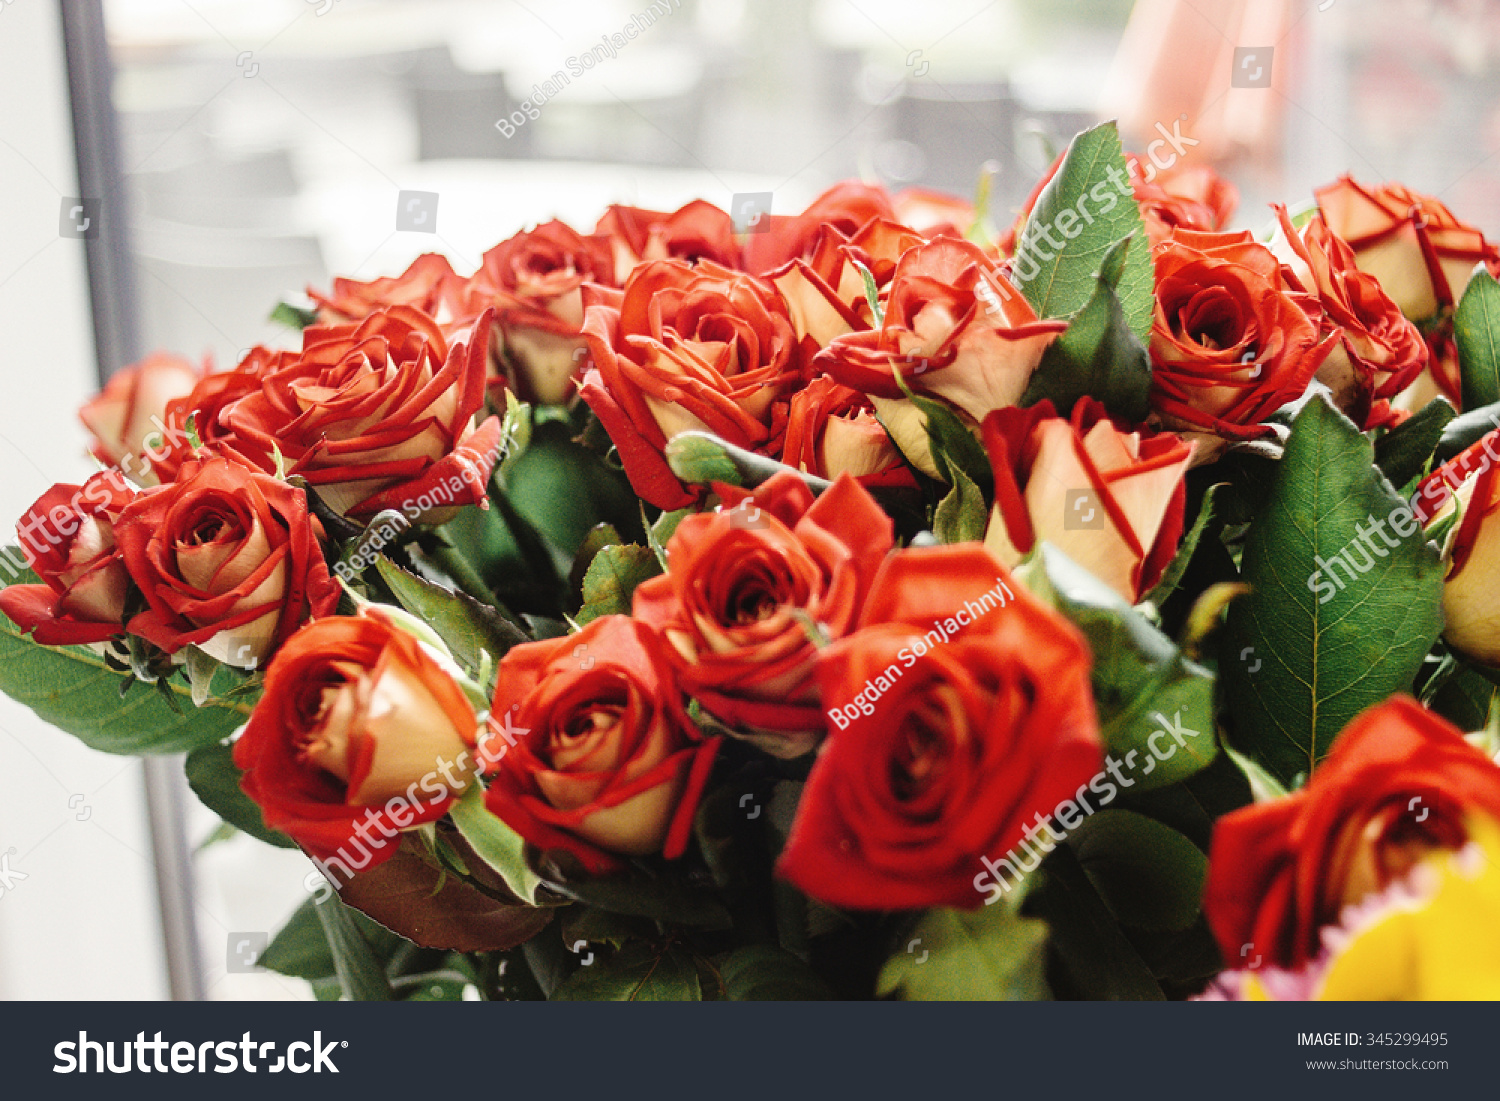 Stylish Gorgeous Flower Bouquets Red Roses Stock Photo (Edit Now ...